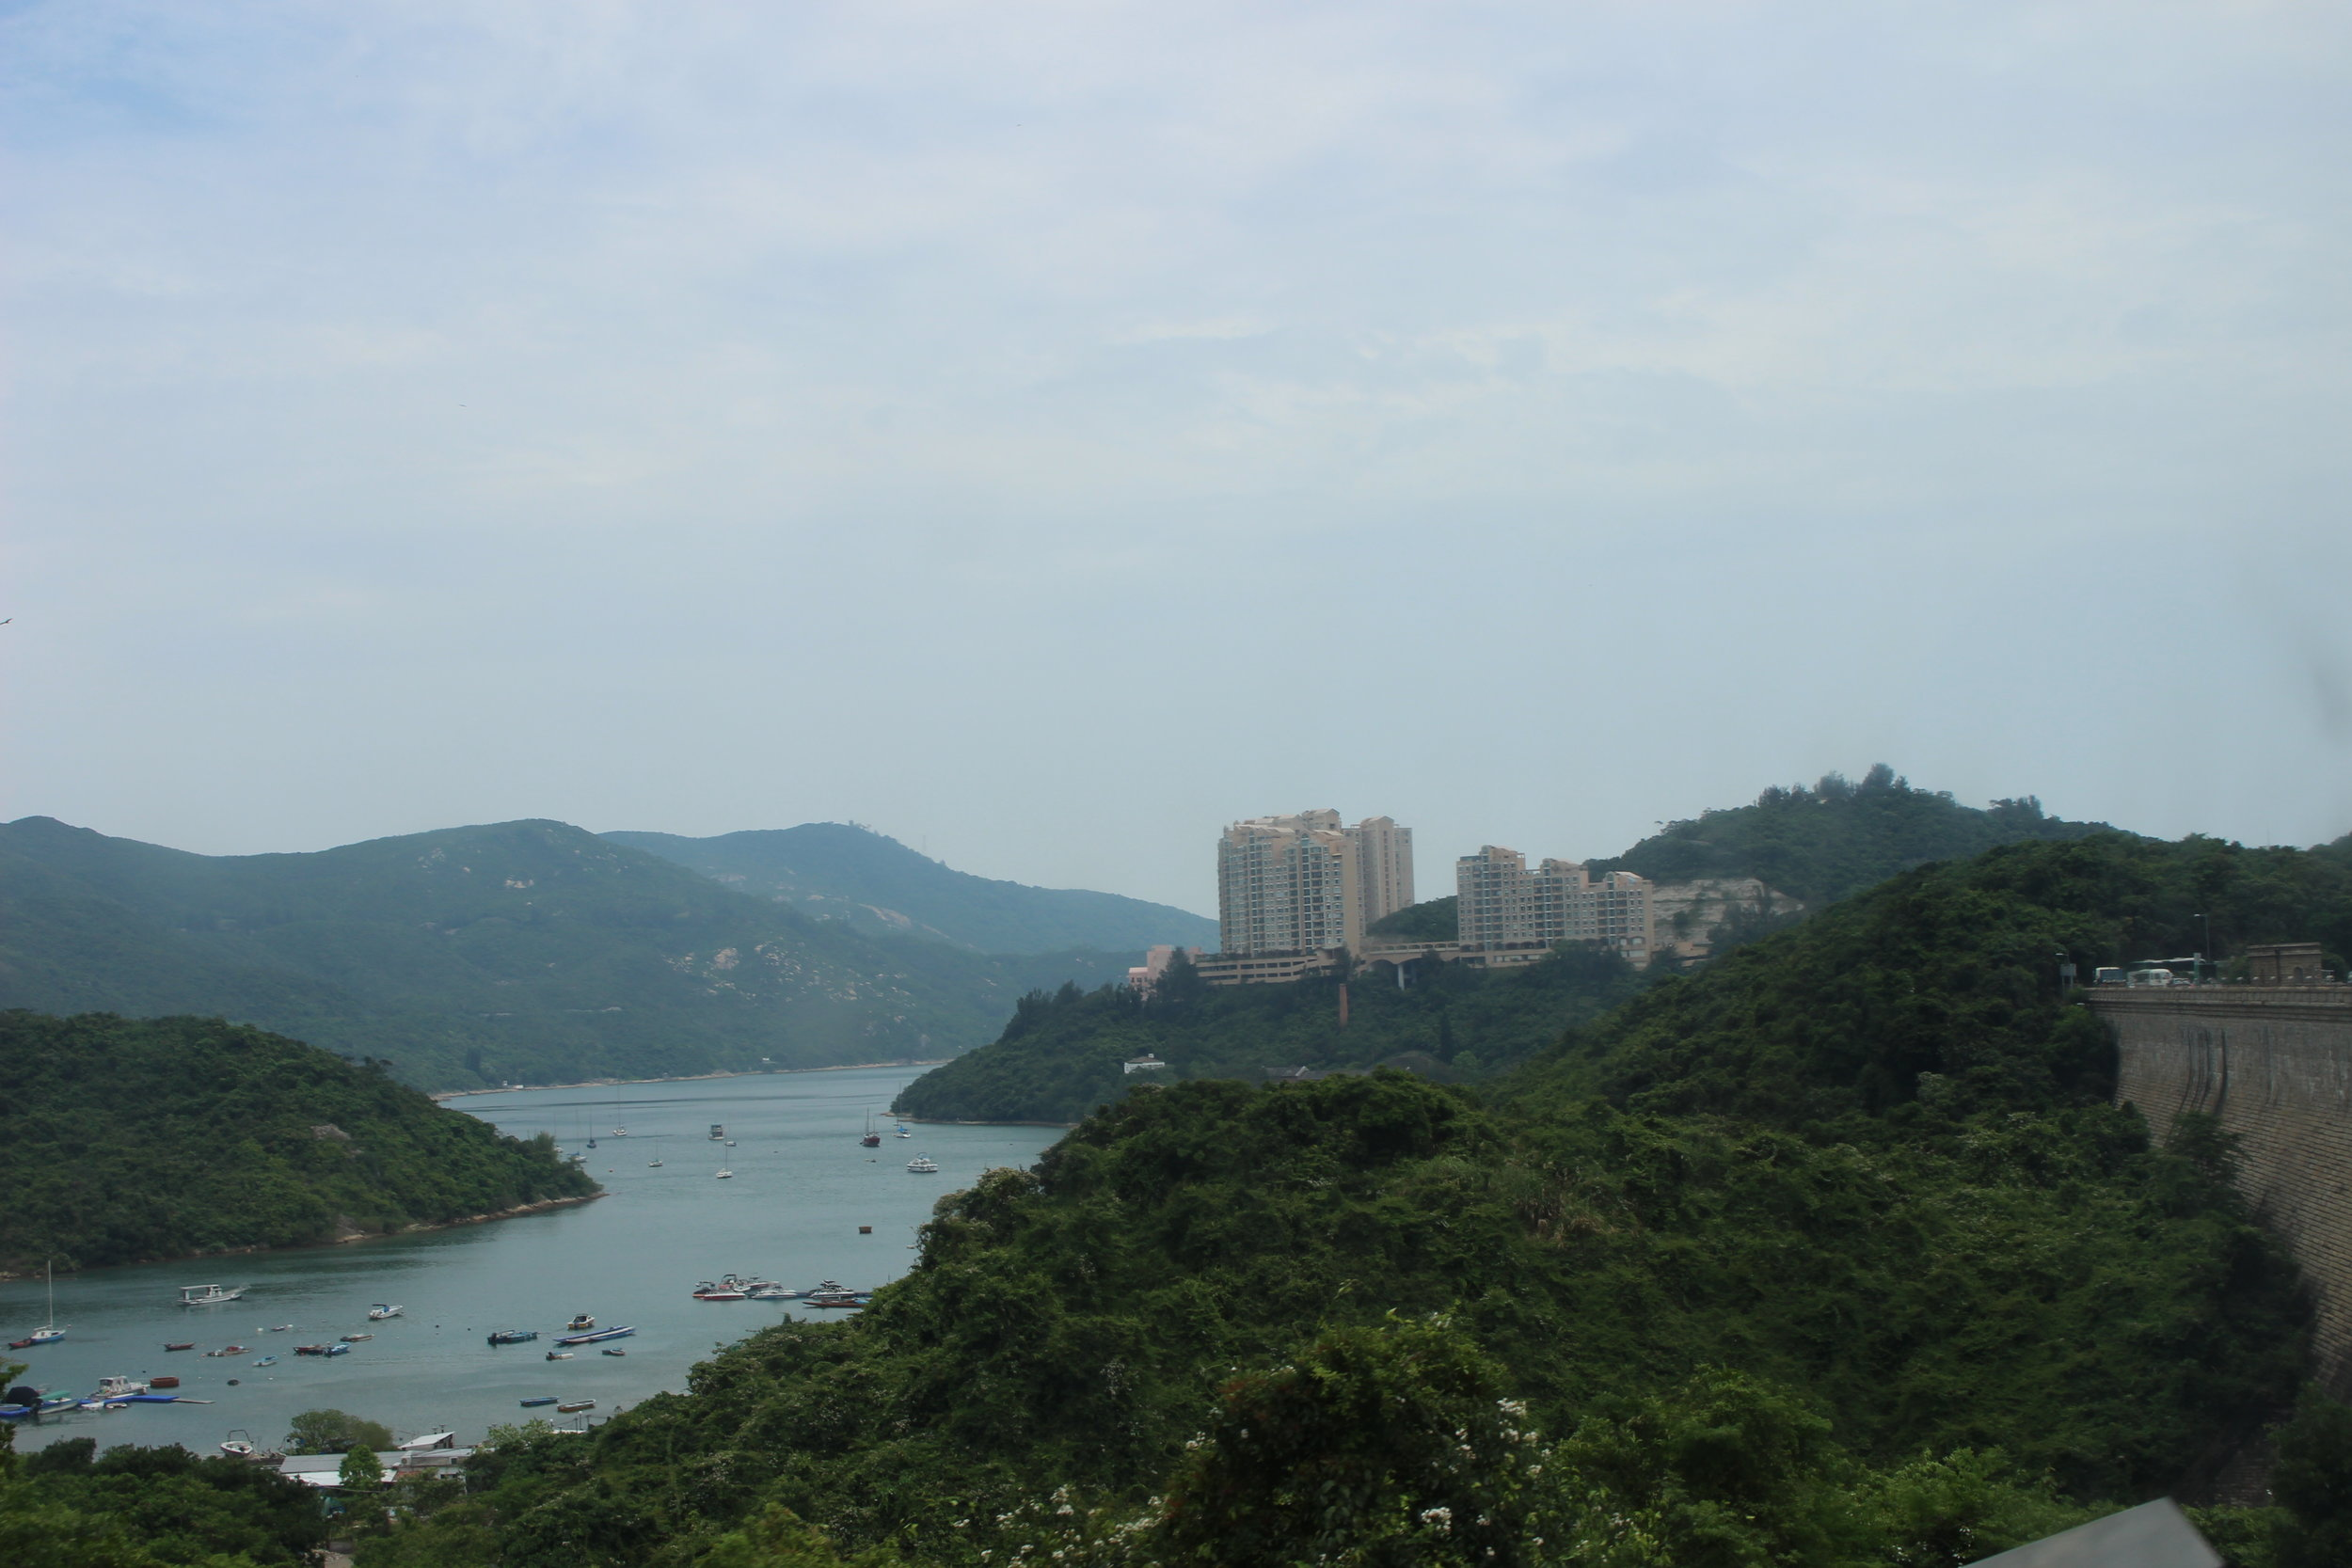 Driving on the outskirts of the city to our show at the Hong Kong International School